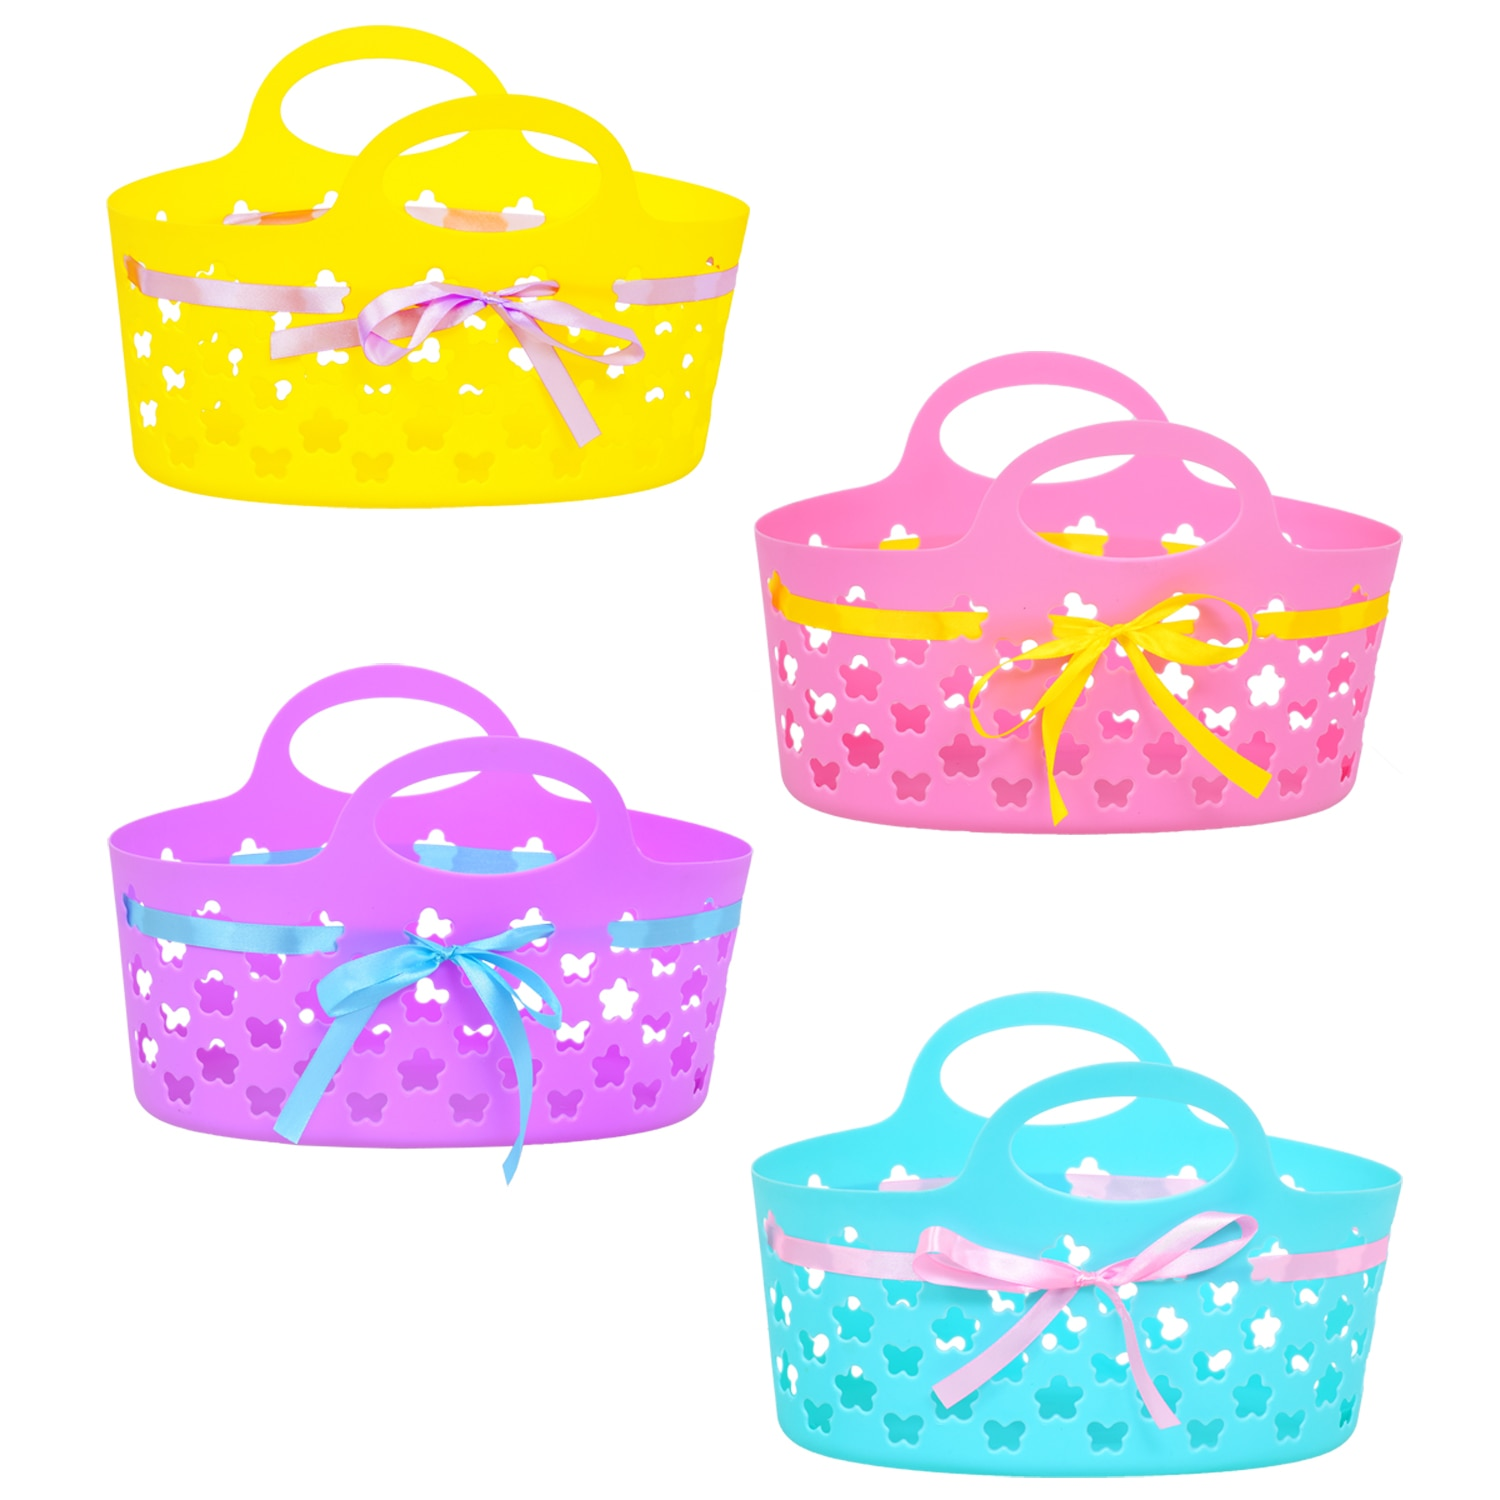 Oval Plastic Baskets with Ribbons